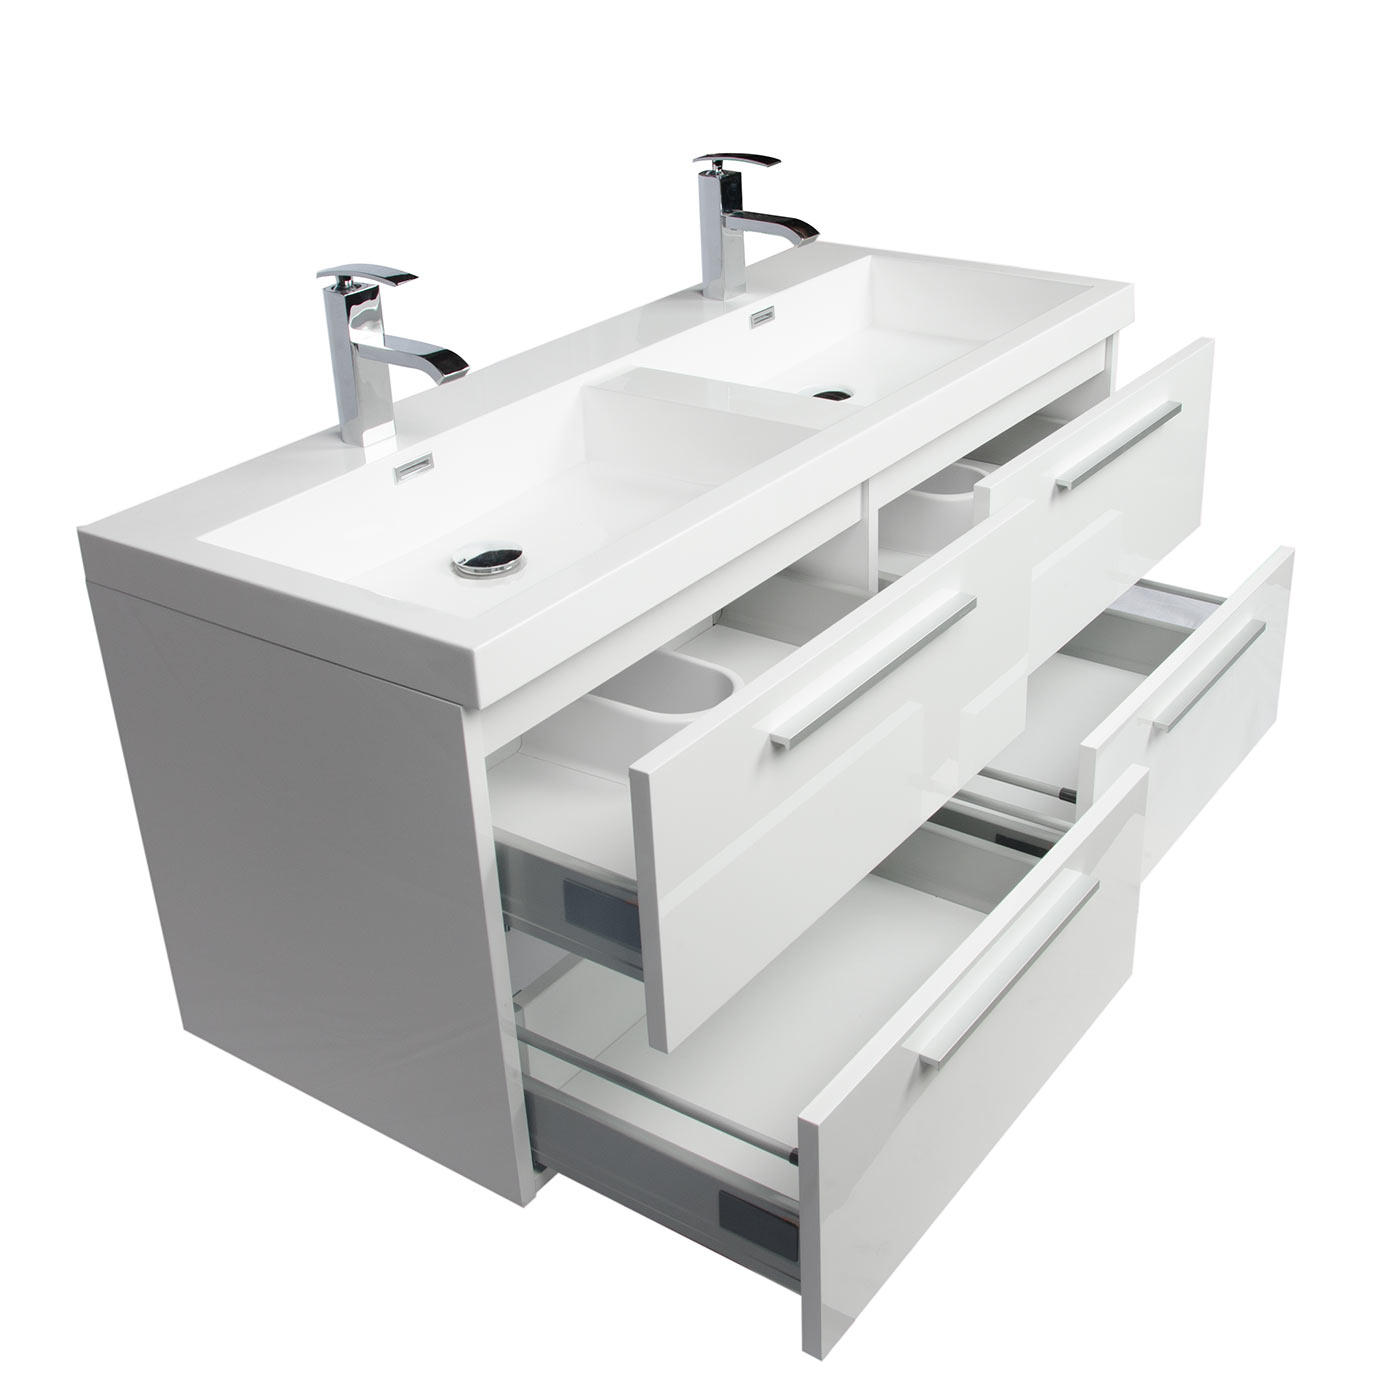 Buy 47 Inch Wall Mounted Modern Double Bathroom Vanity High Gloss White  Tnt1200dhgw On Conceptbaths